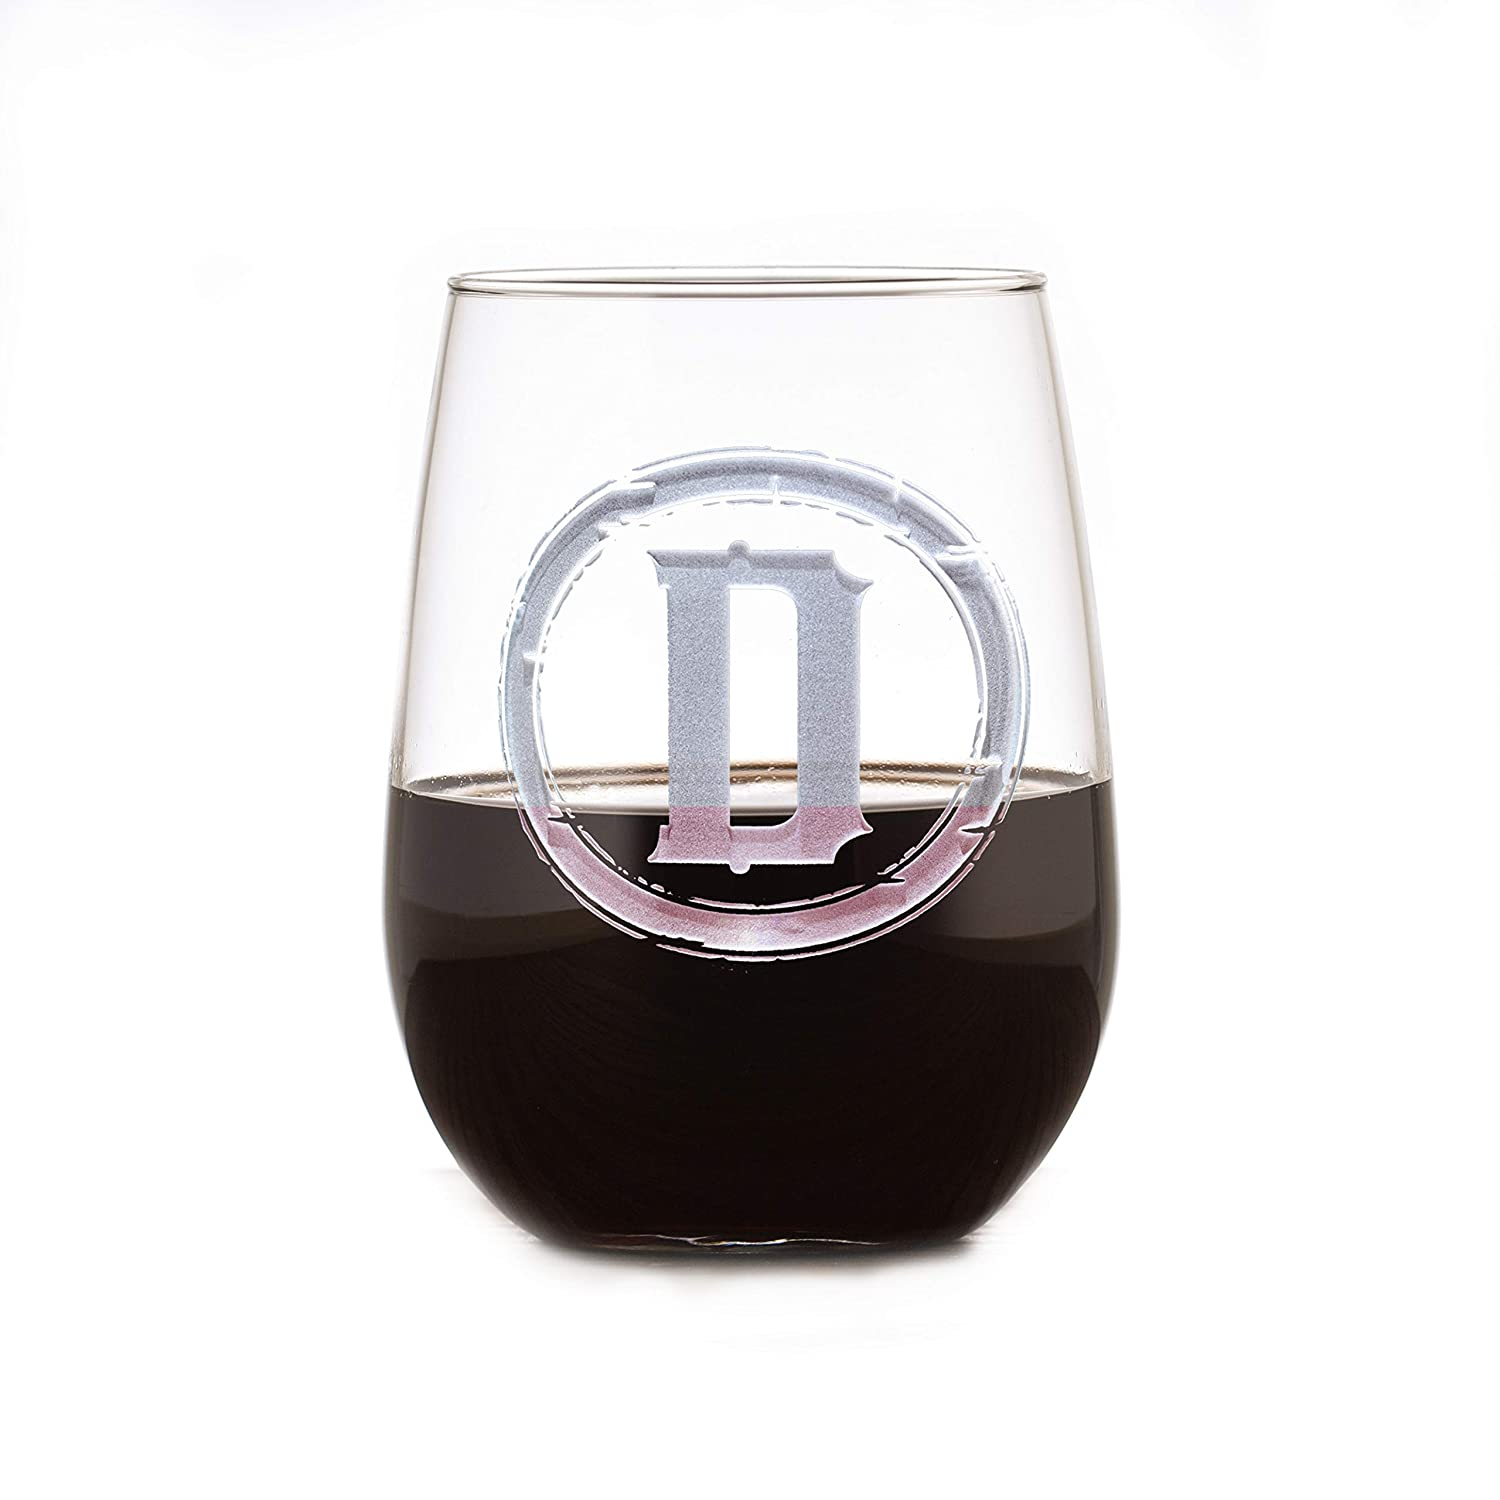 glassware custom personalized gifts, wine gifts custom monogram Monogram stemless wine glass personalized stemless wine glasses